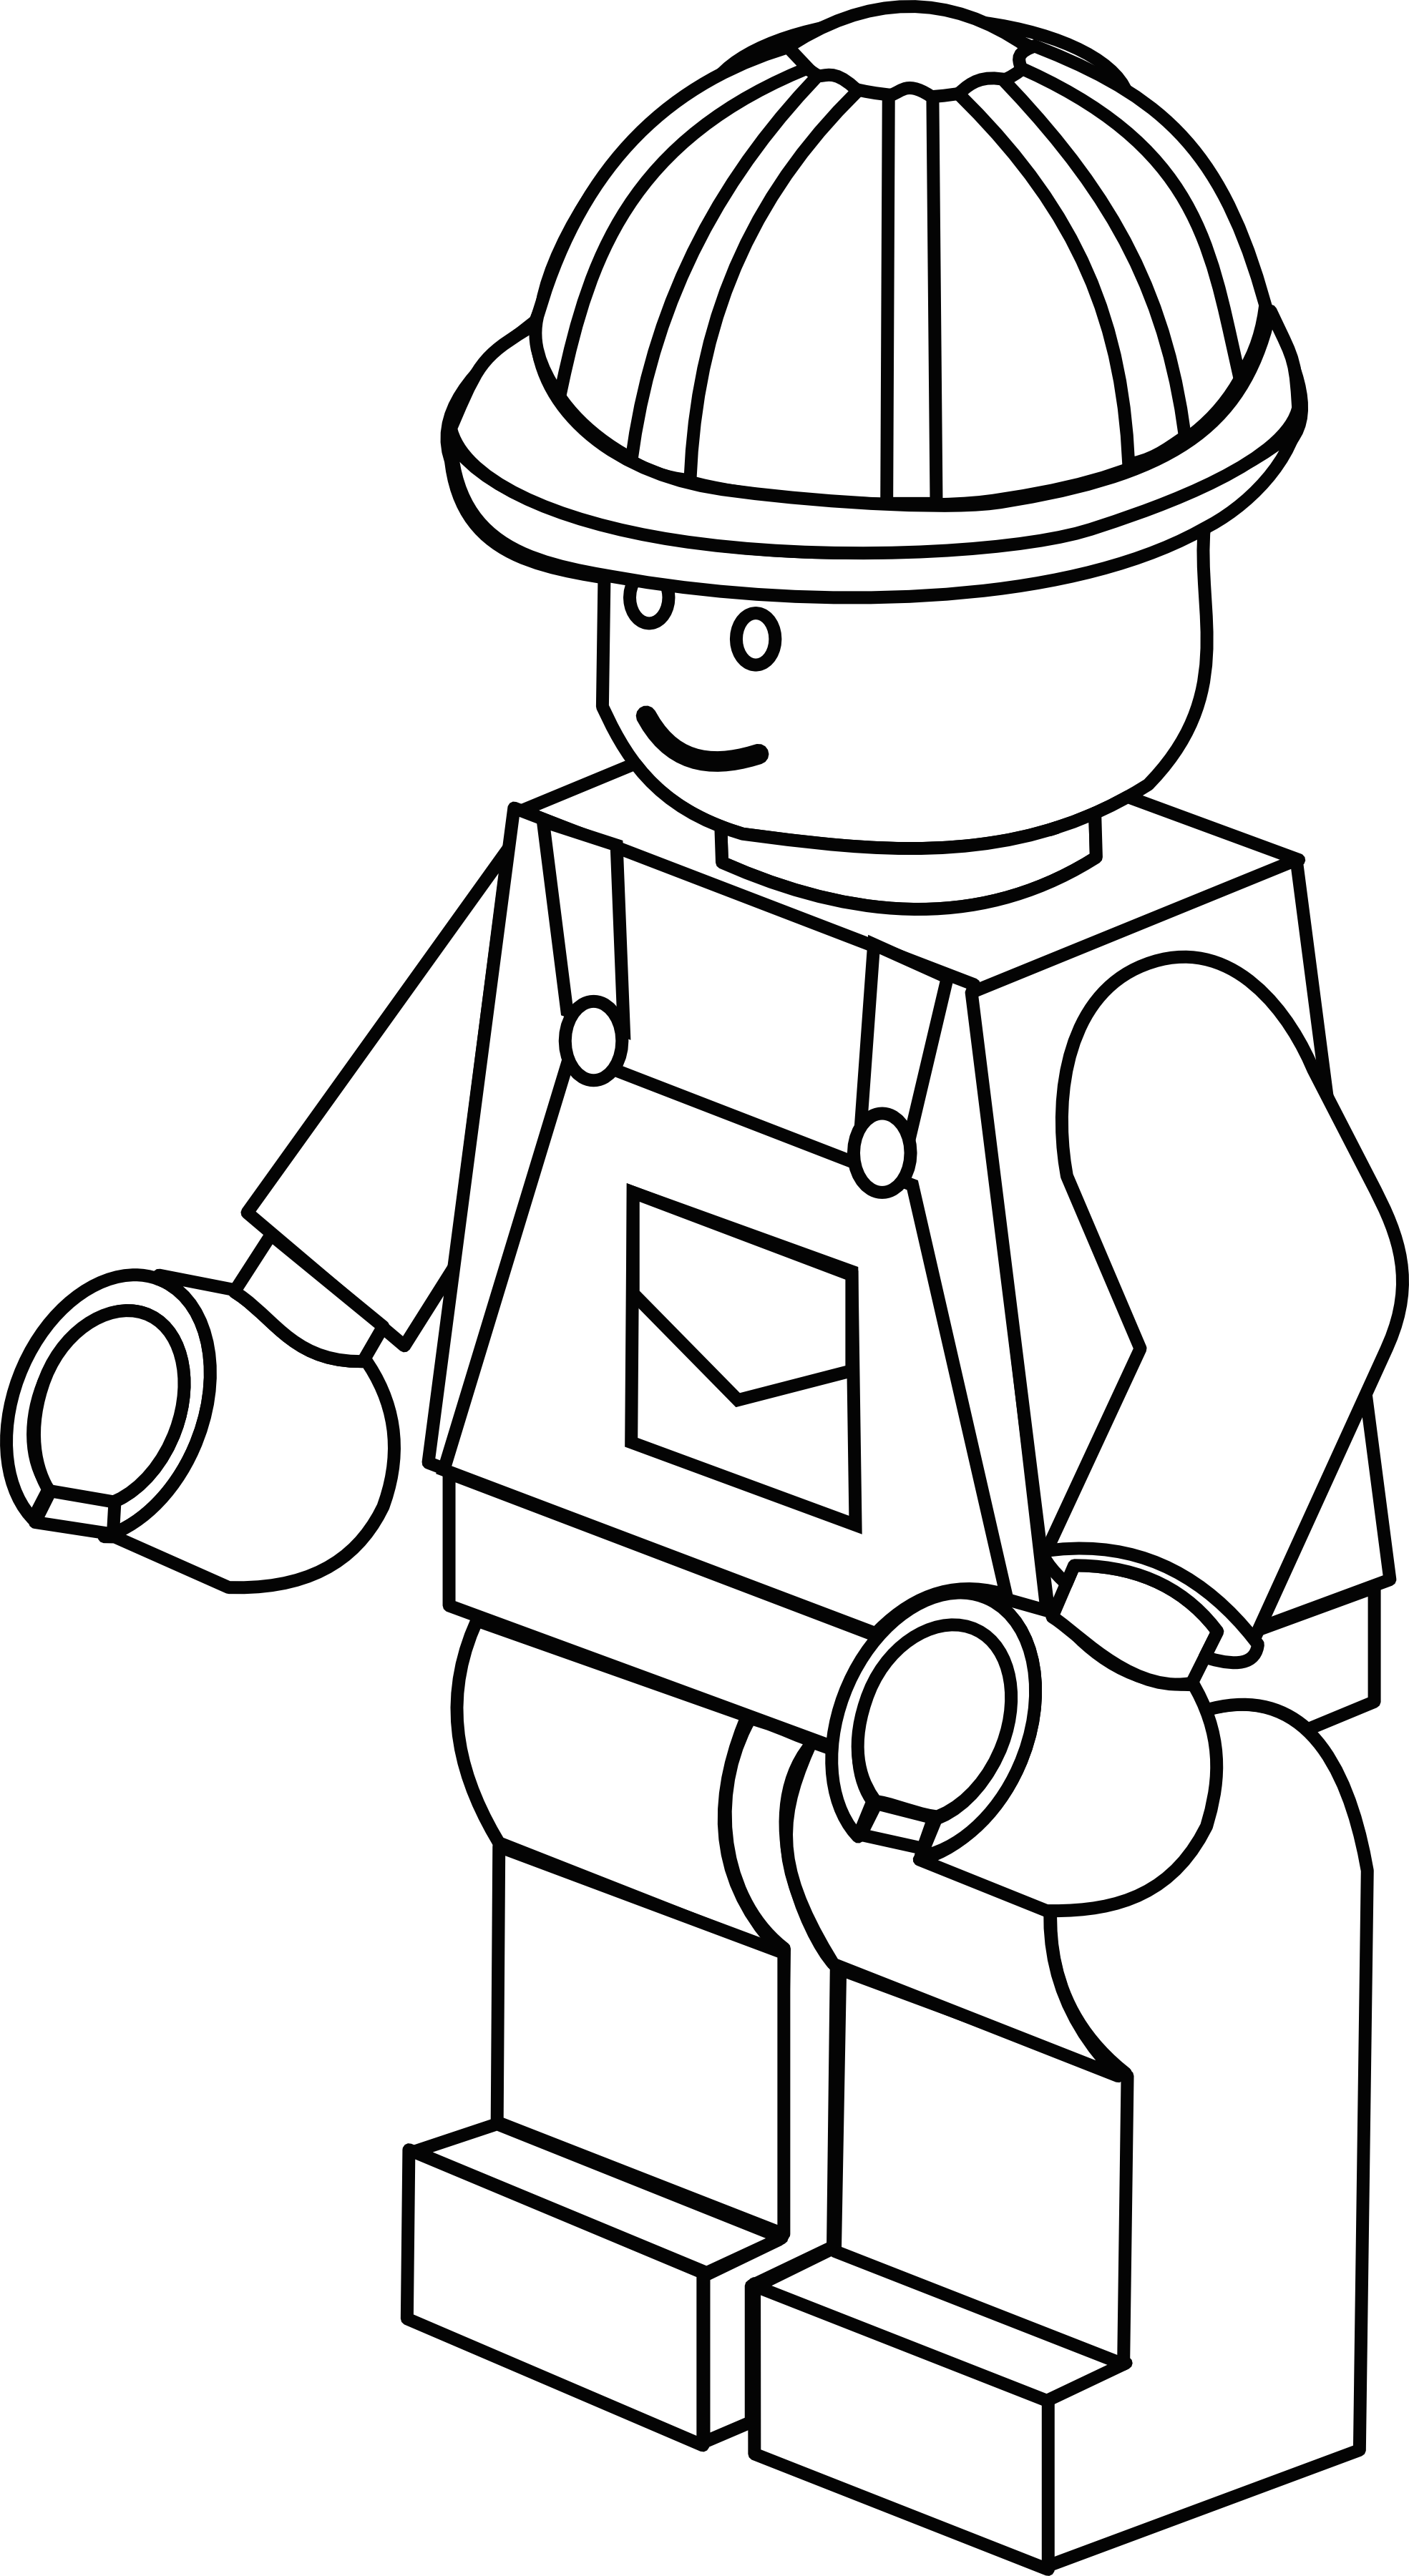 more complex lego figure colouring sheet fun for max pinterest